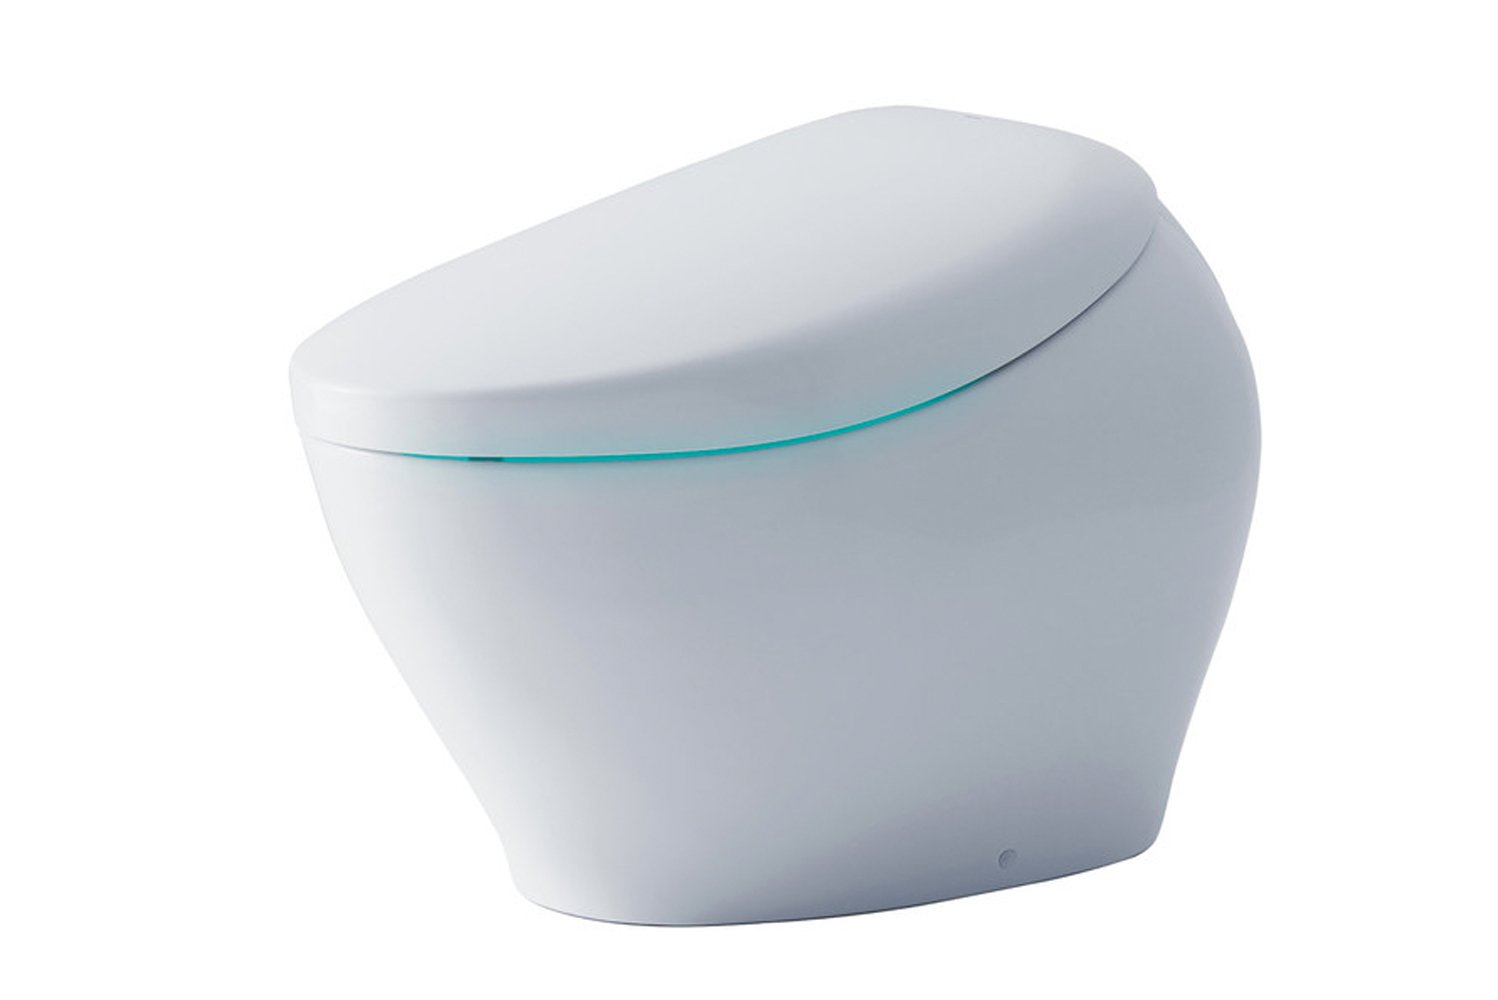 The Neorest NX2 is an intelligent toilet with advanced cleansing technology.